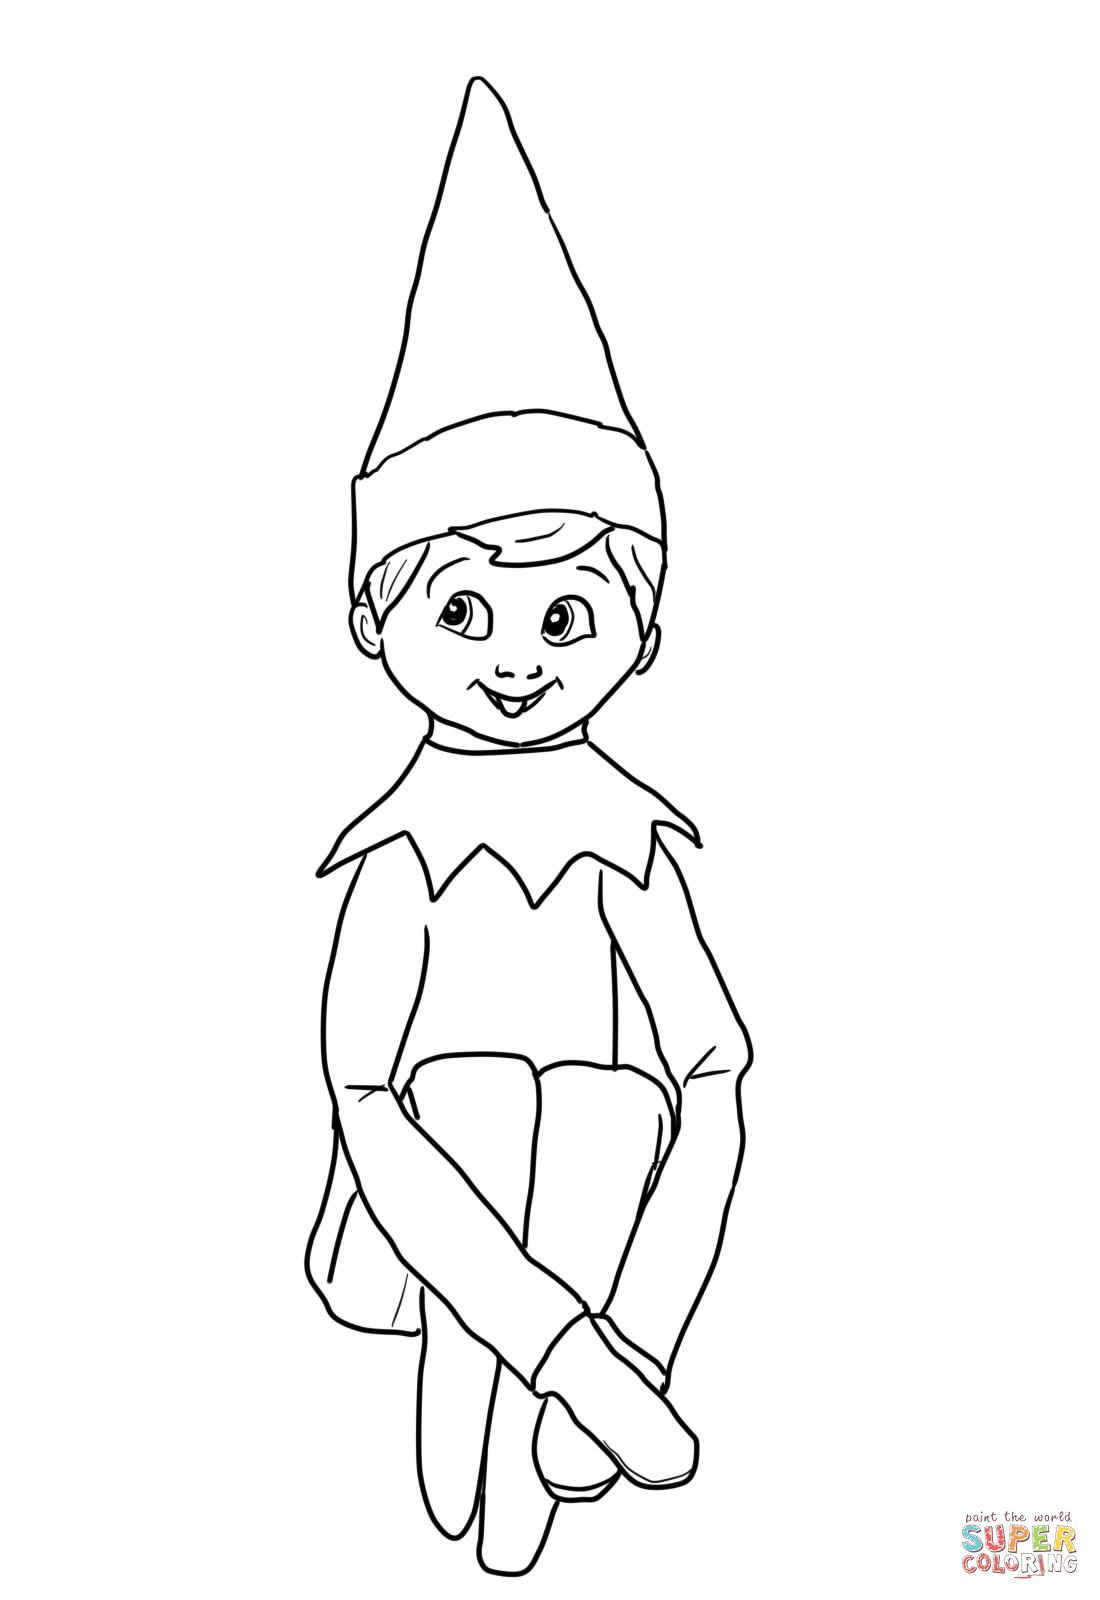 Santa S Elves Colouring Pages With Girl Elf On The Shelf Coloring You Might Also Be Interested